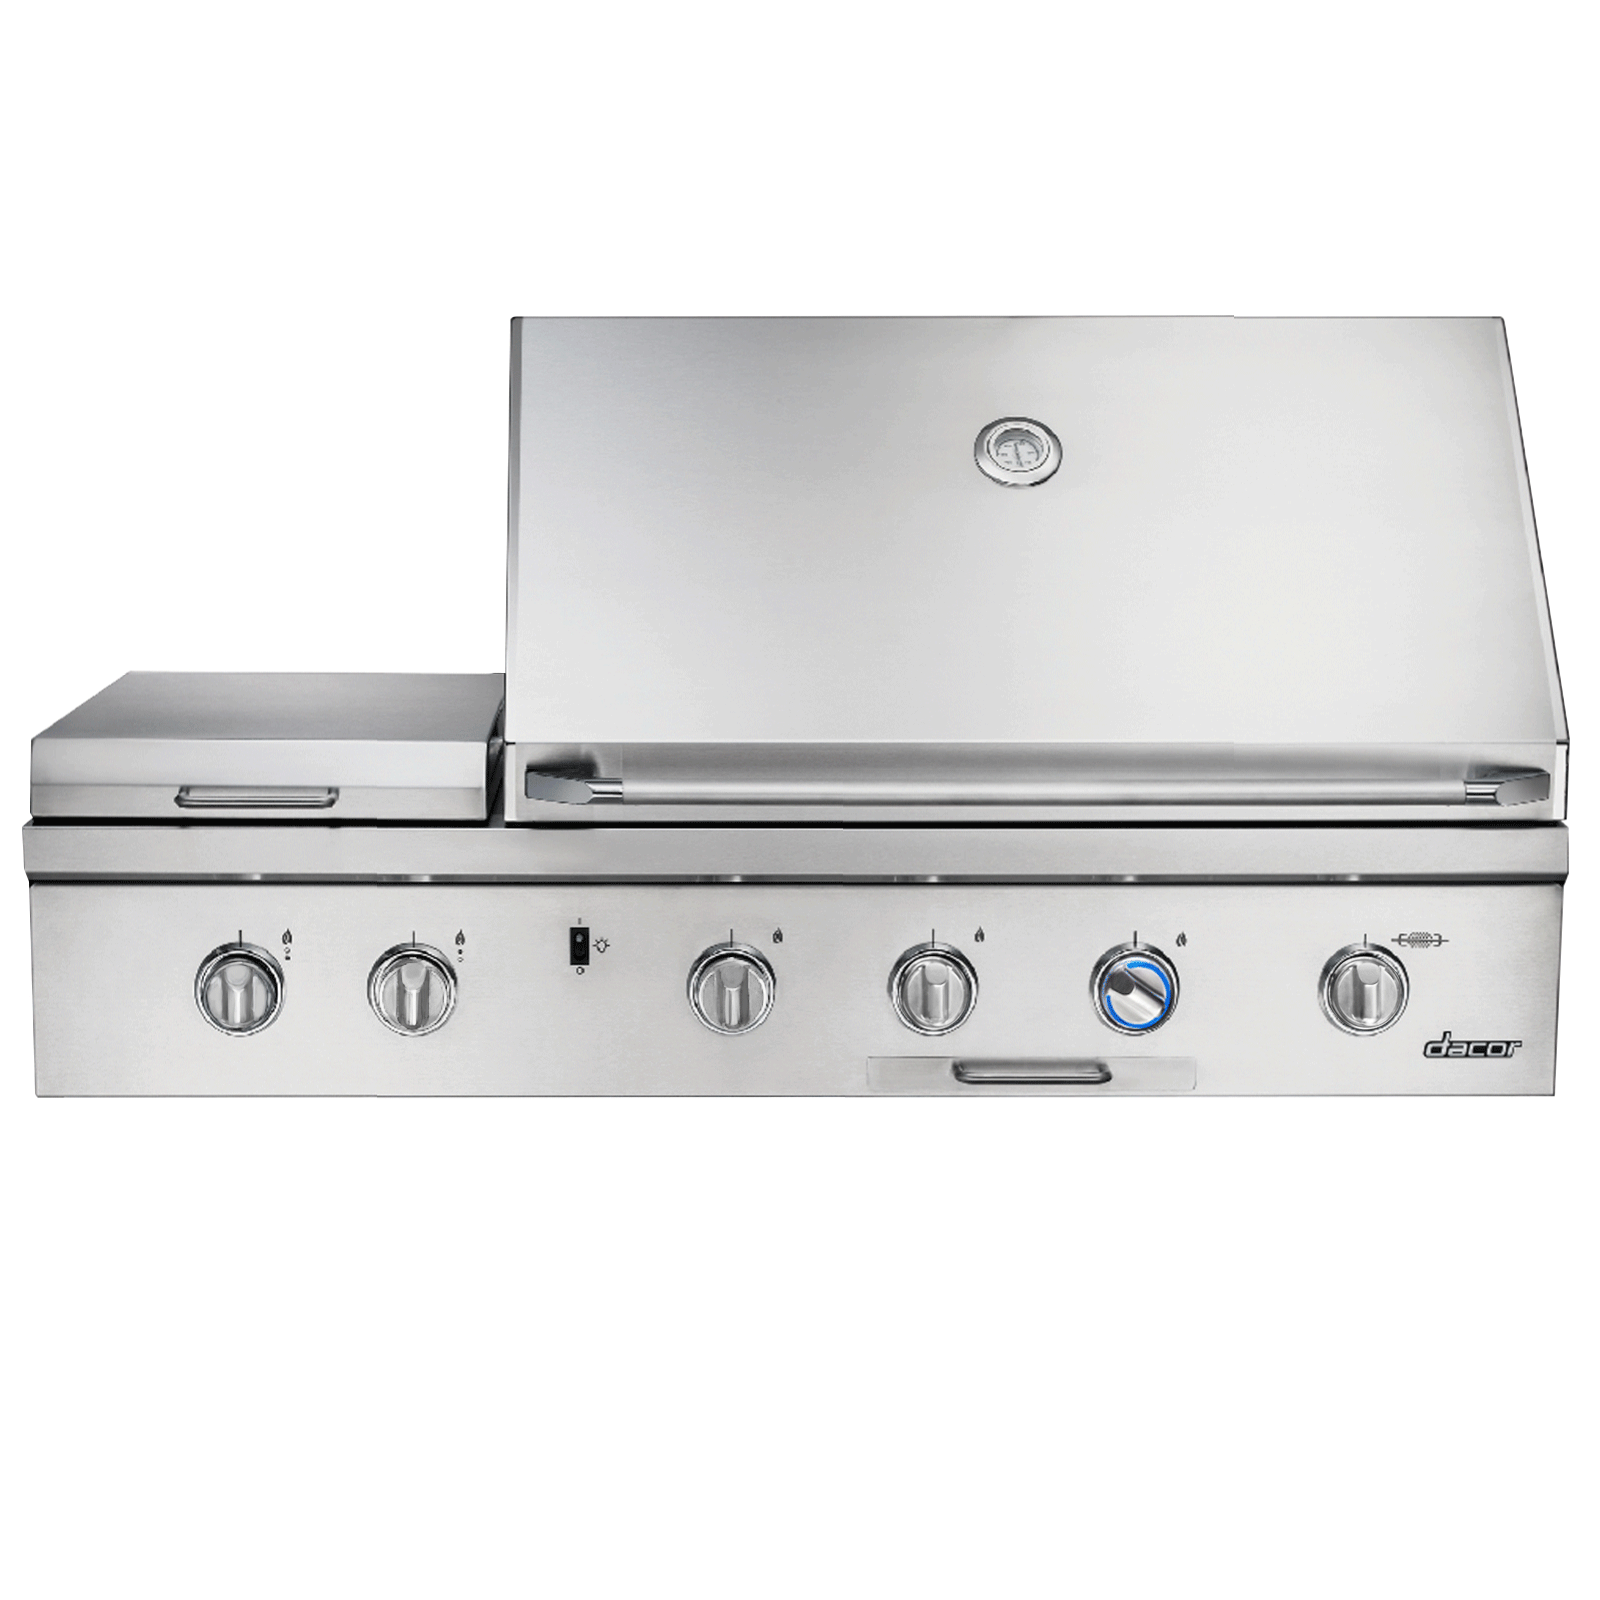 "Model: OBS52/LP | Dacor 52"" Outdoor Grill, , includes Sear Burner- LP Gas"